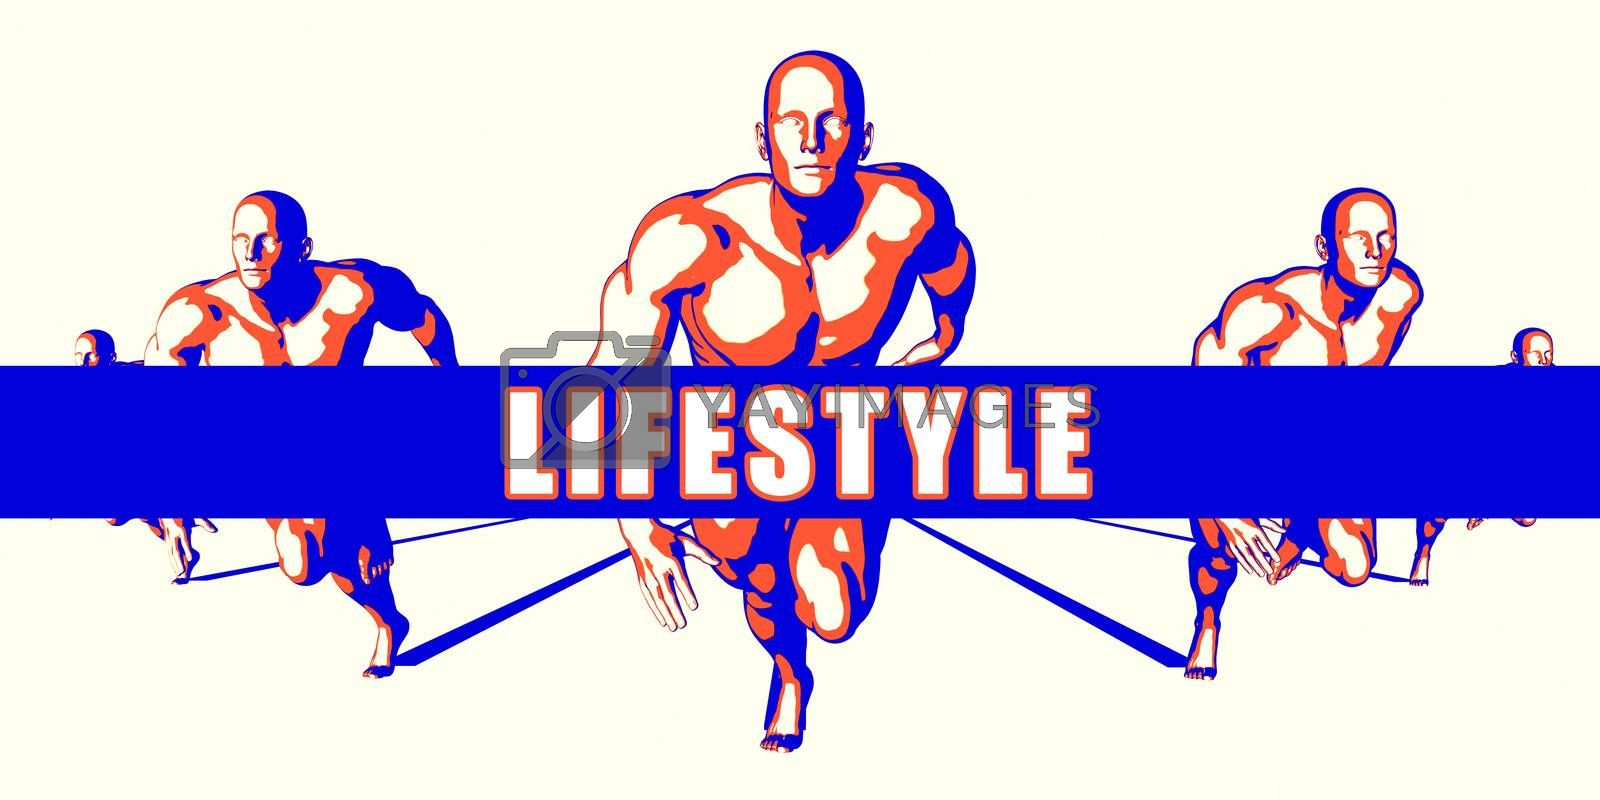 Lifestyle as a Competition Concept Illustration Art